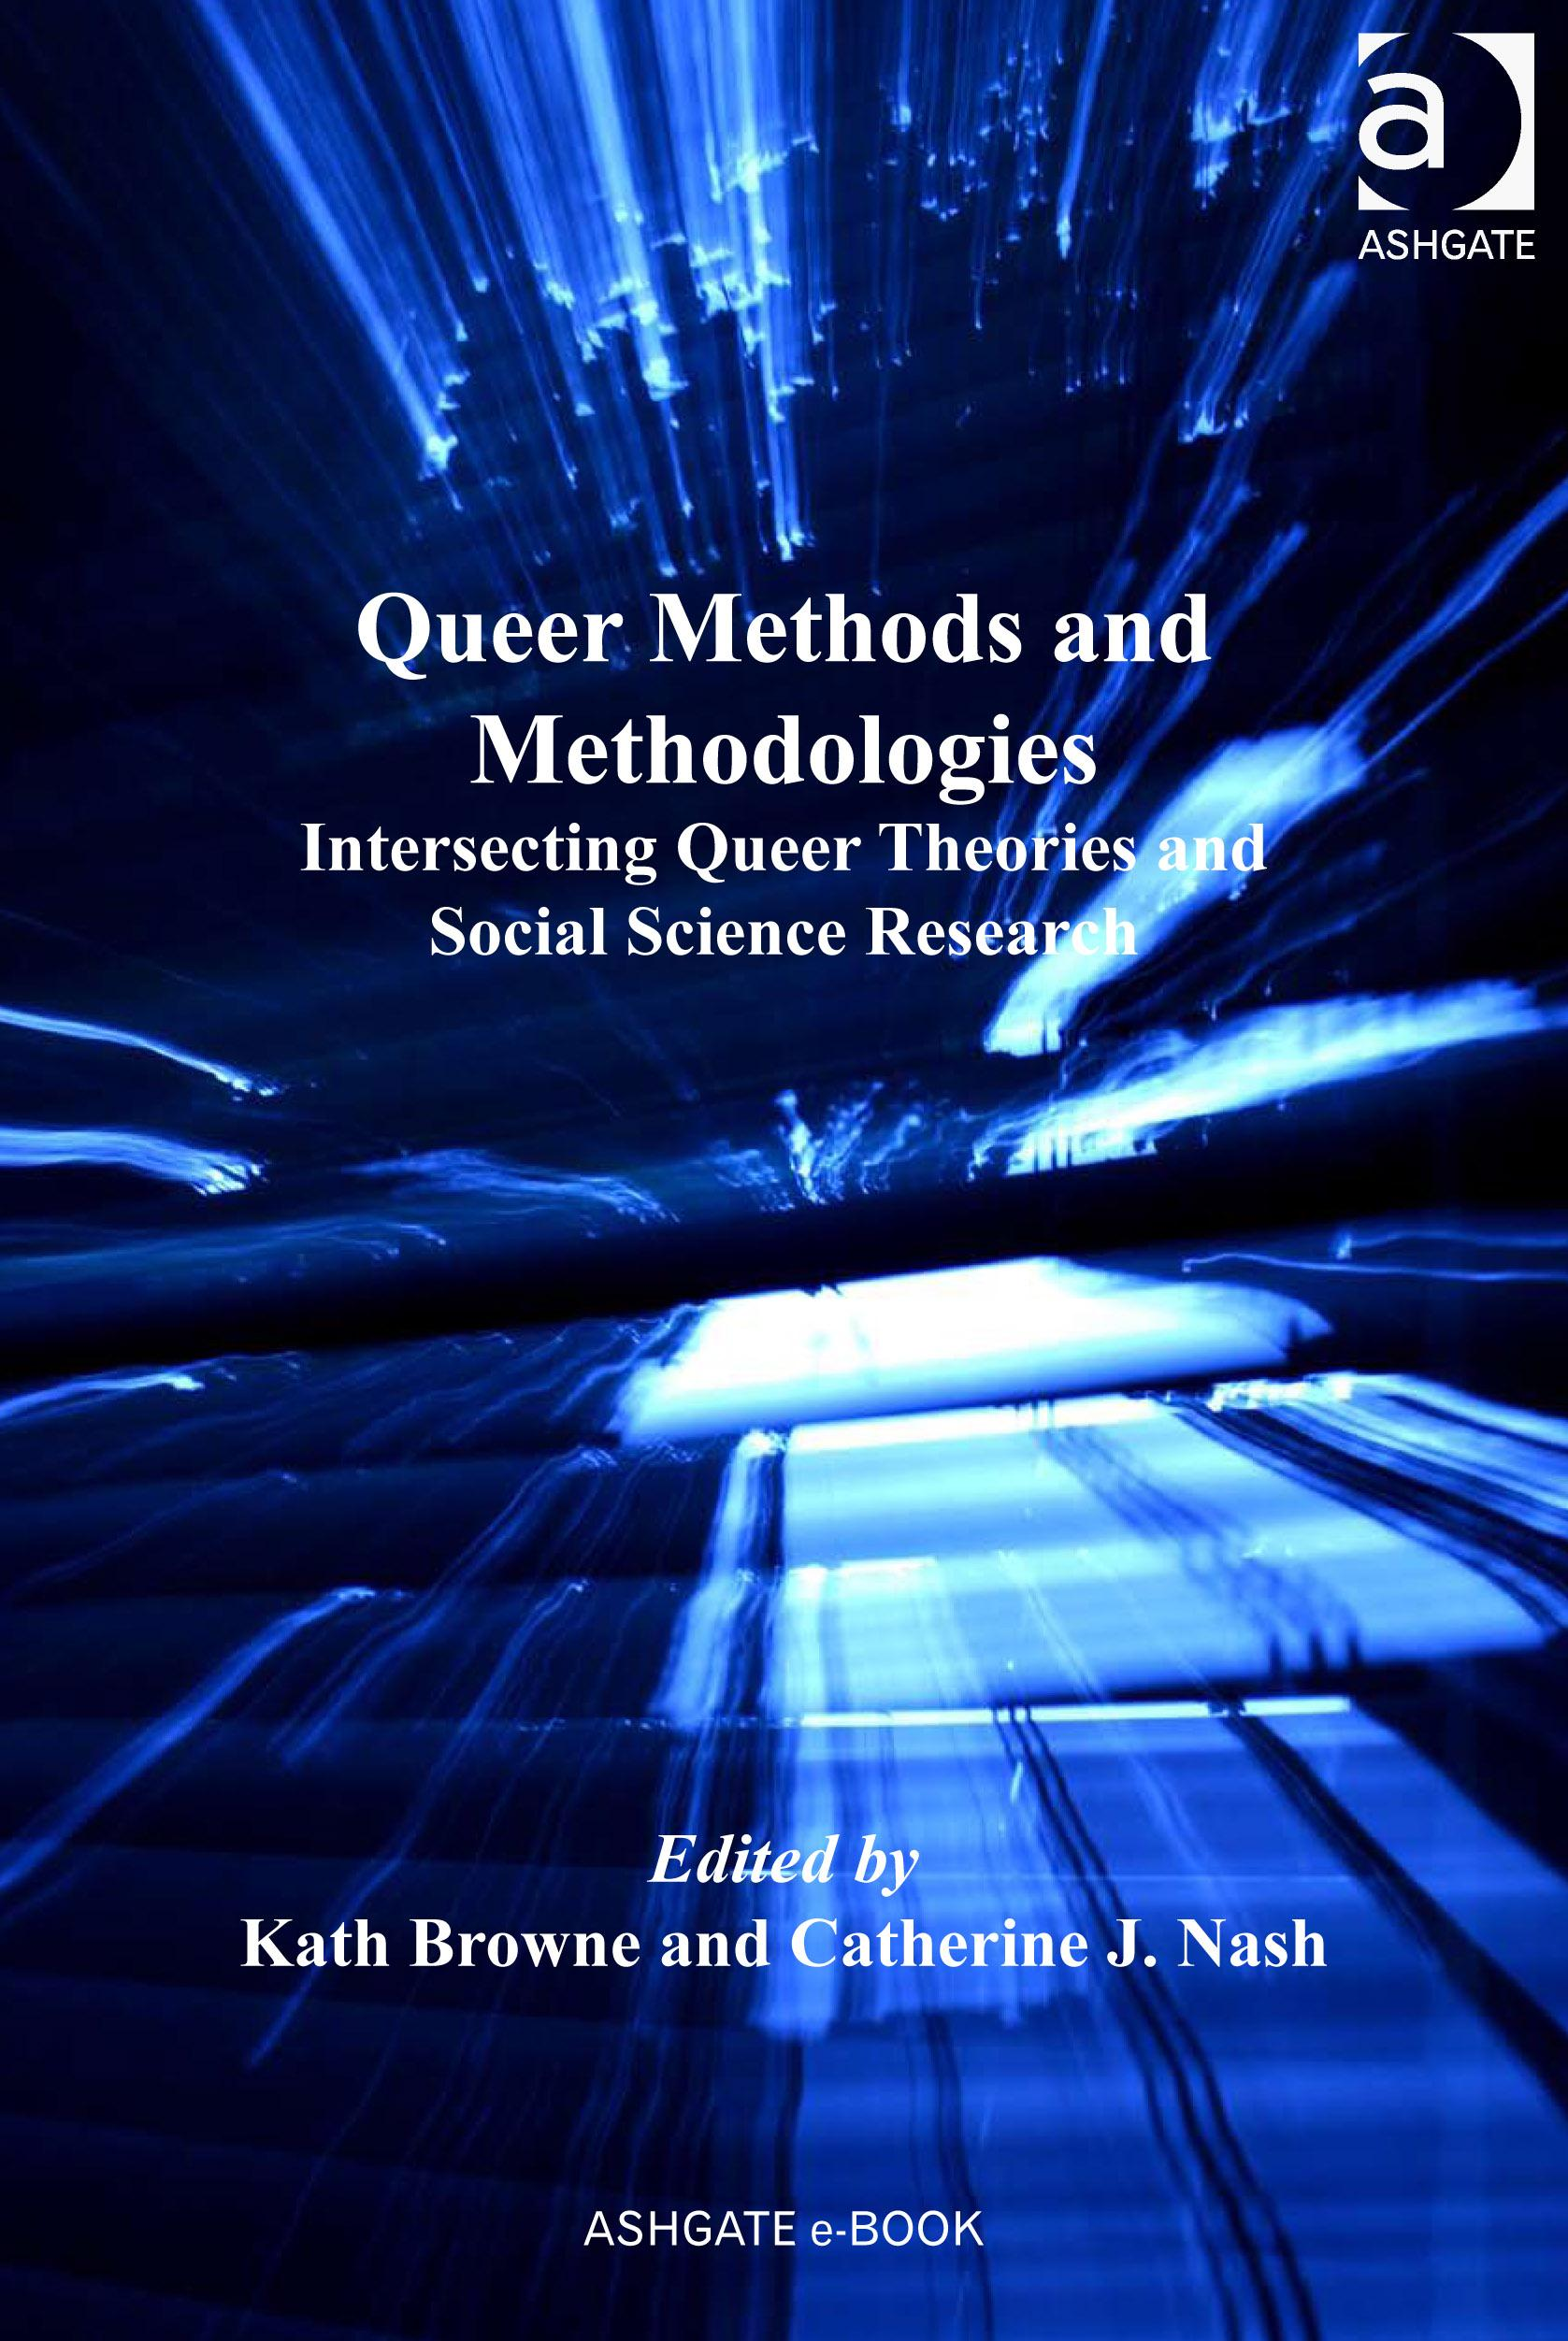 Queer Methods and Methodologies: Intersecting Queer Theories and Social Science Research EB9780754696636